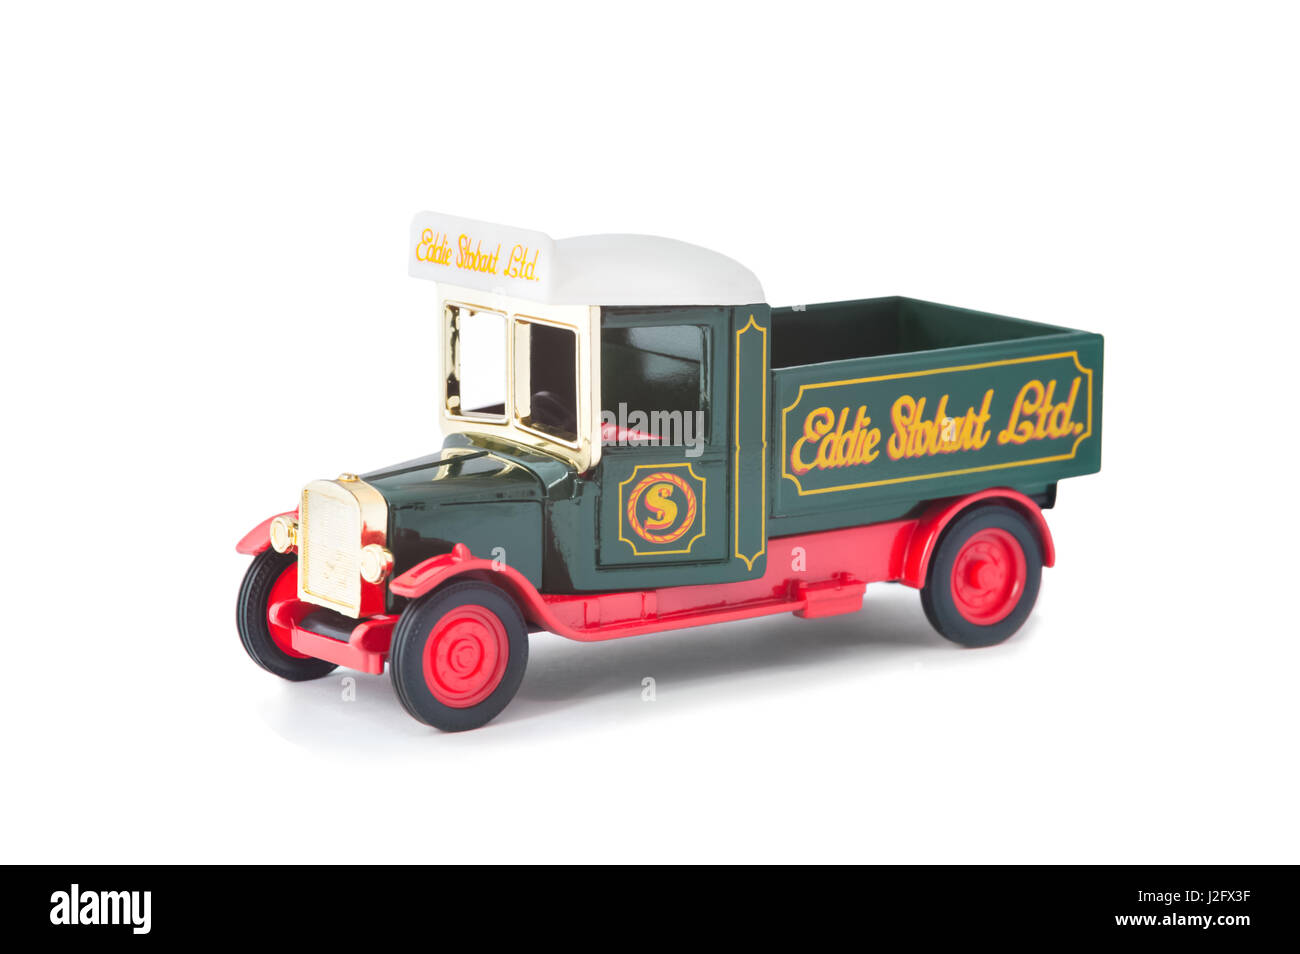 Vintage model pick-up truck manufactured by Corgi in Eddie Stobart livery on white - Stock Image